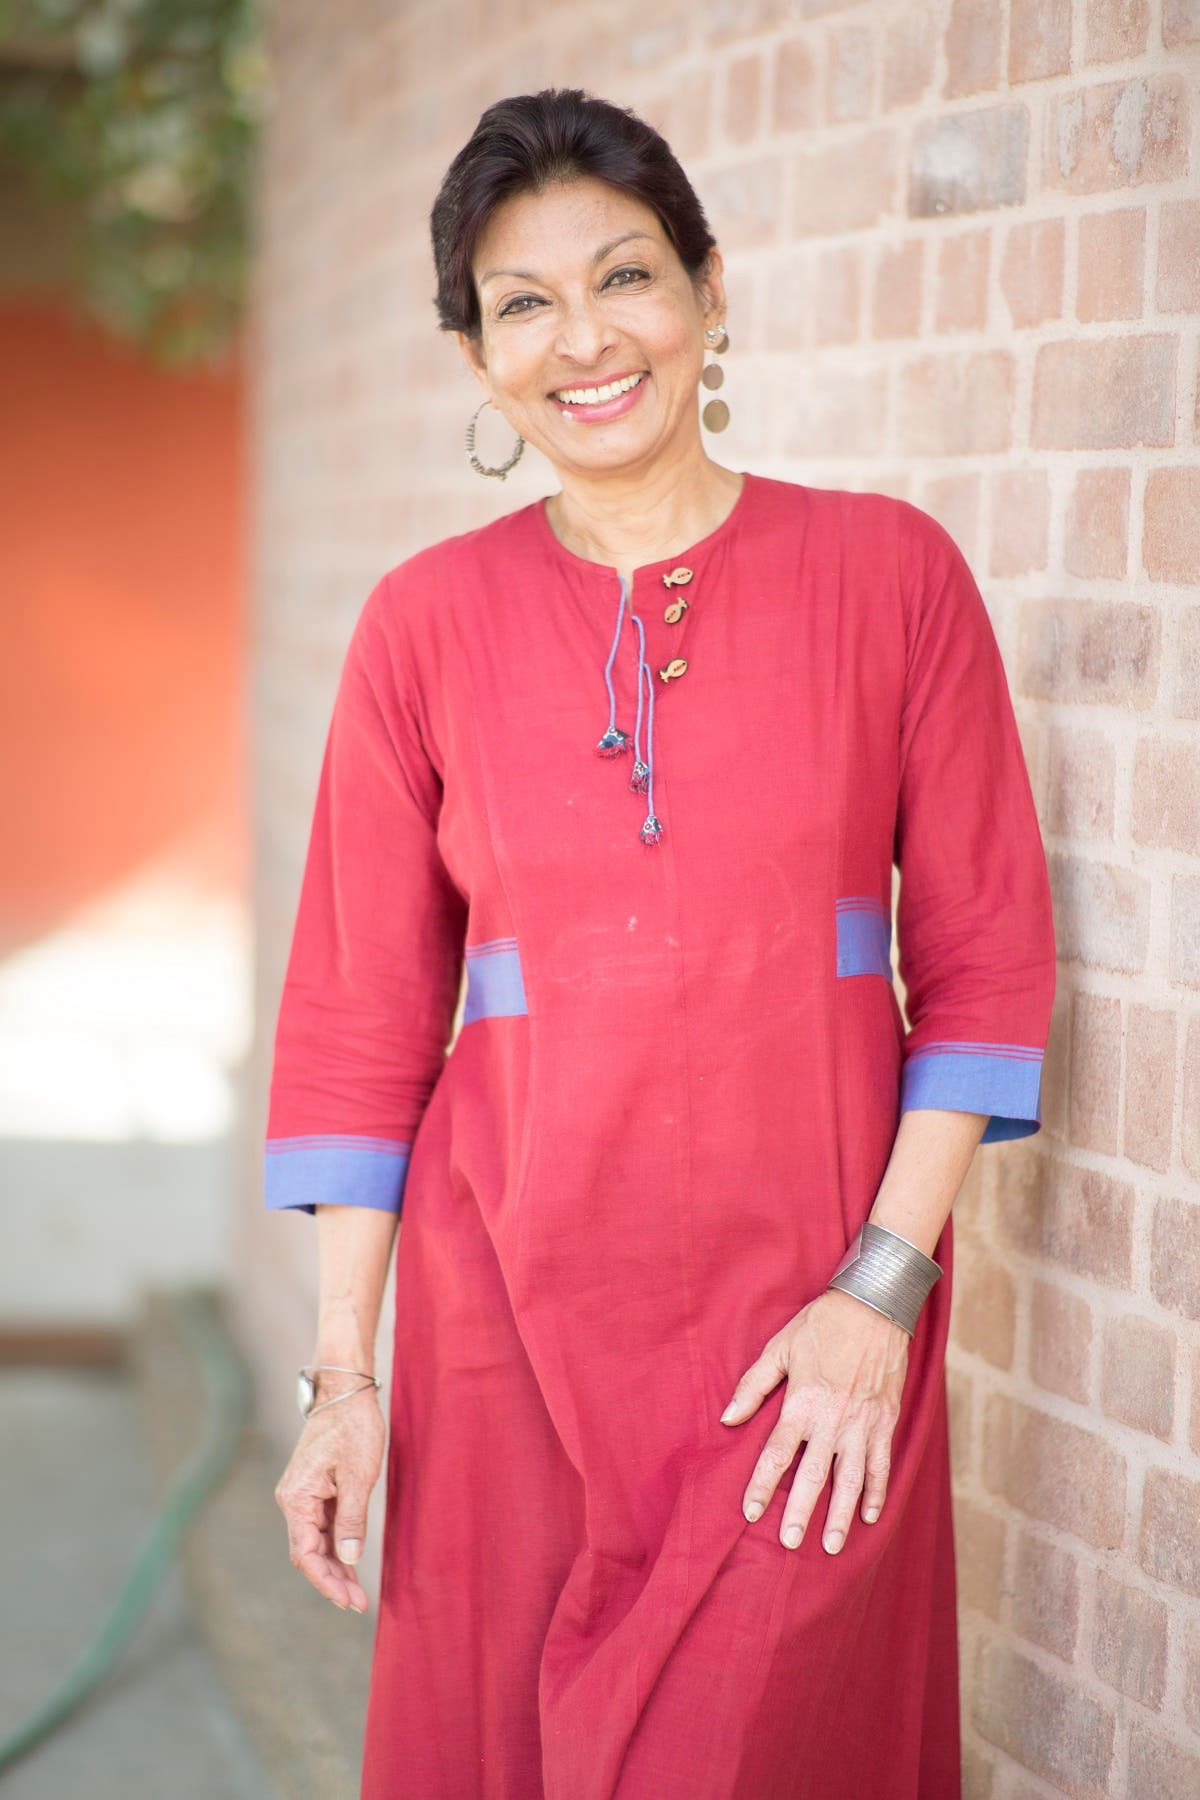 According to Dr Mallika Sarabhai, Ahmedabad earned the UNESCO tag because of Ahmed Shah's vision. (Supplied)